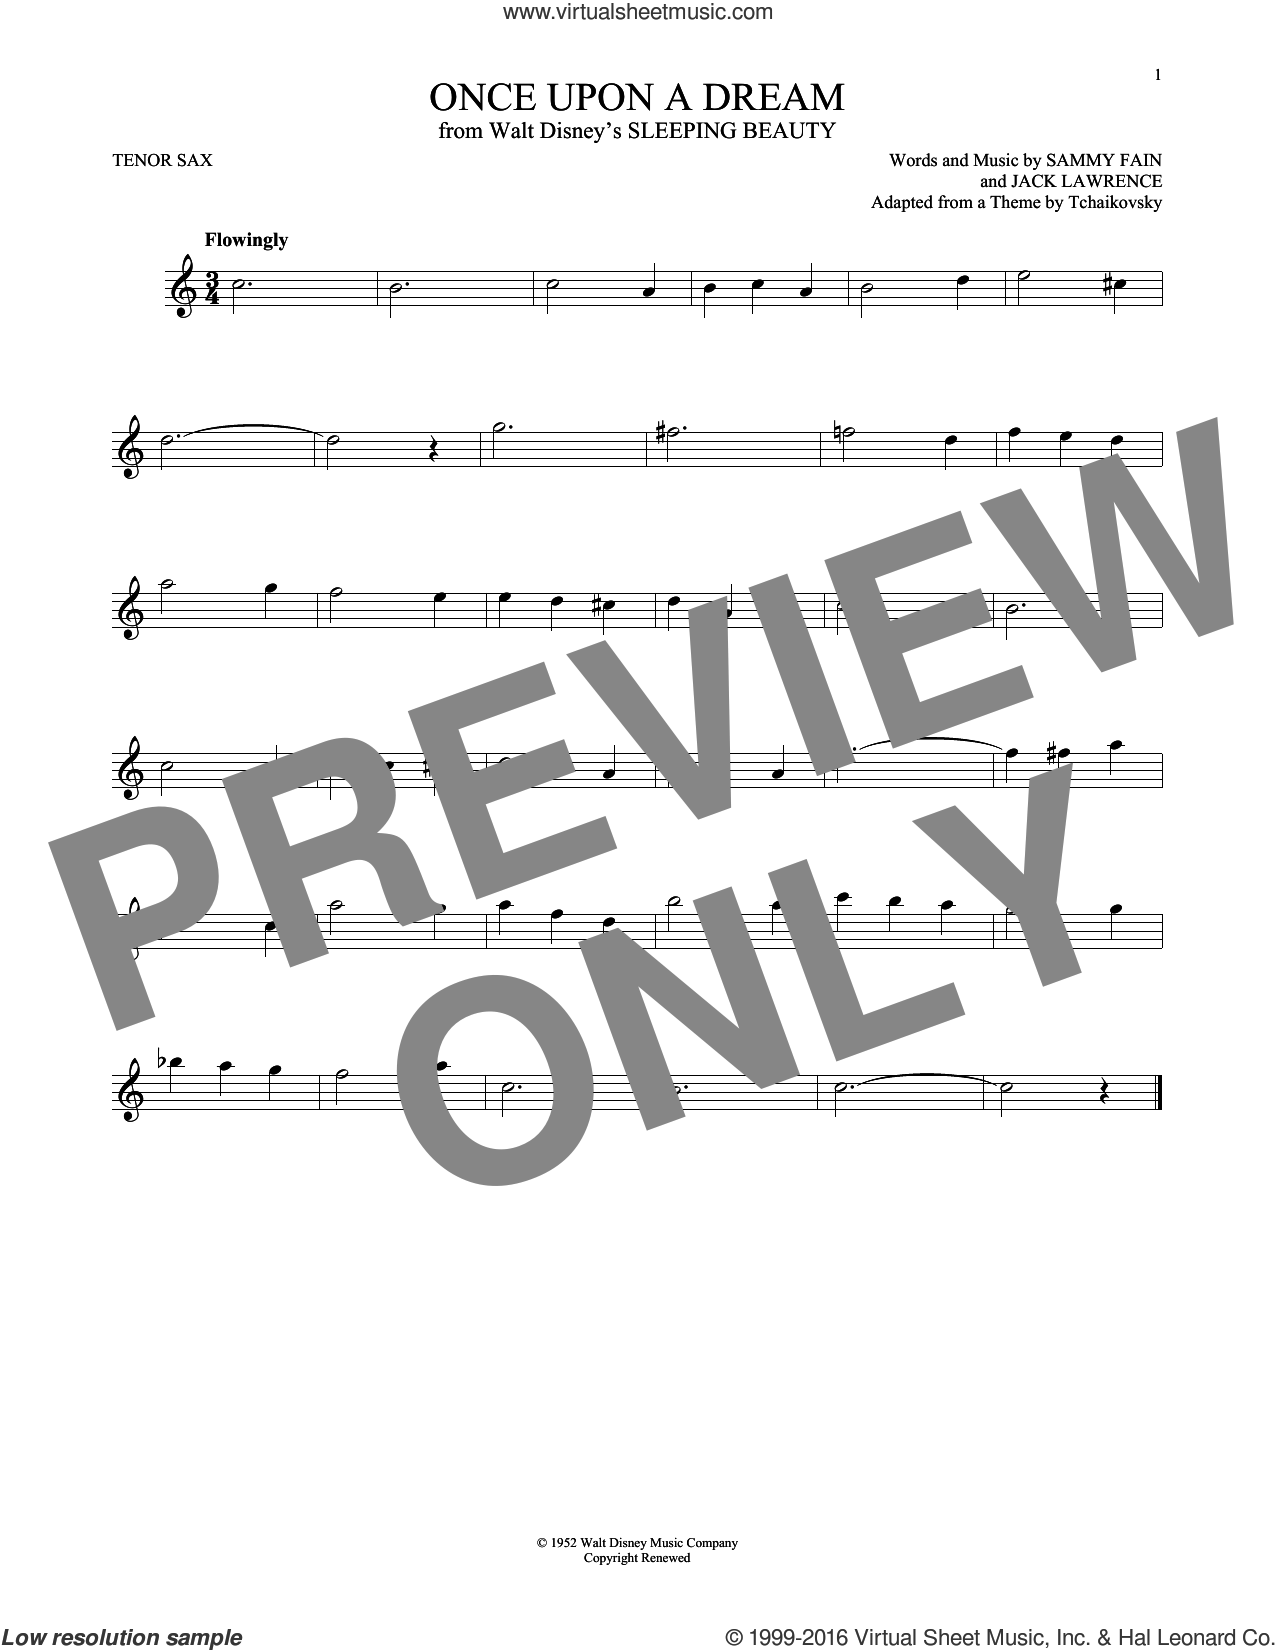 Once Upon A Dream sheet music for tenor saxophone solo by Sammy Fain and Jack Lawrence, intermediate skill level